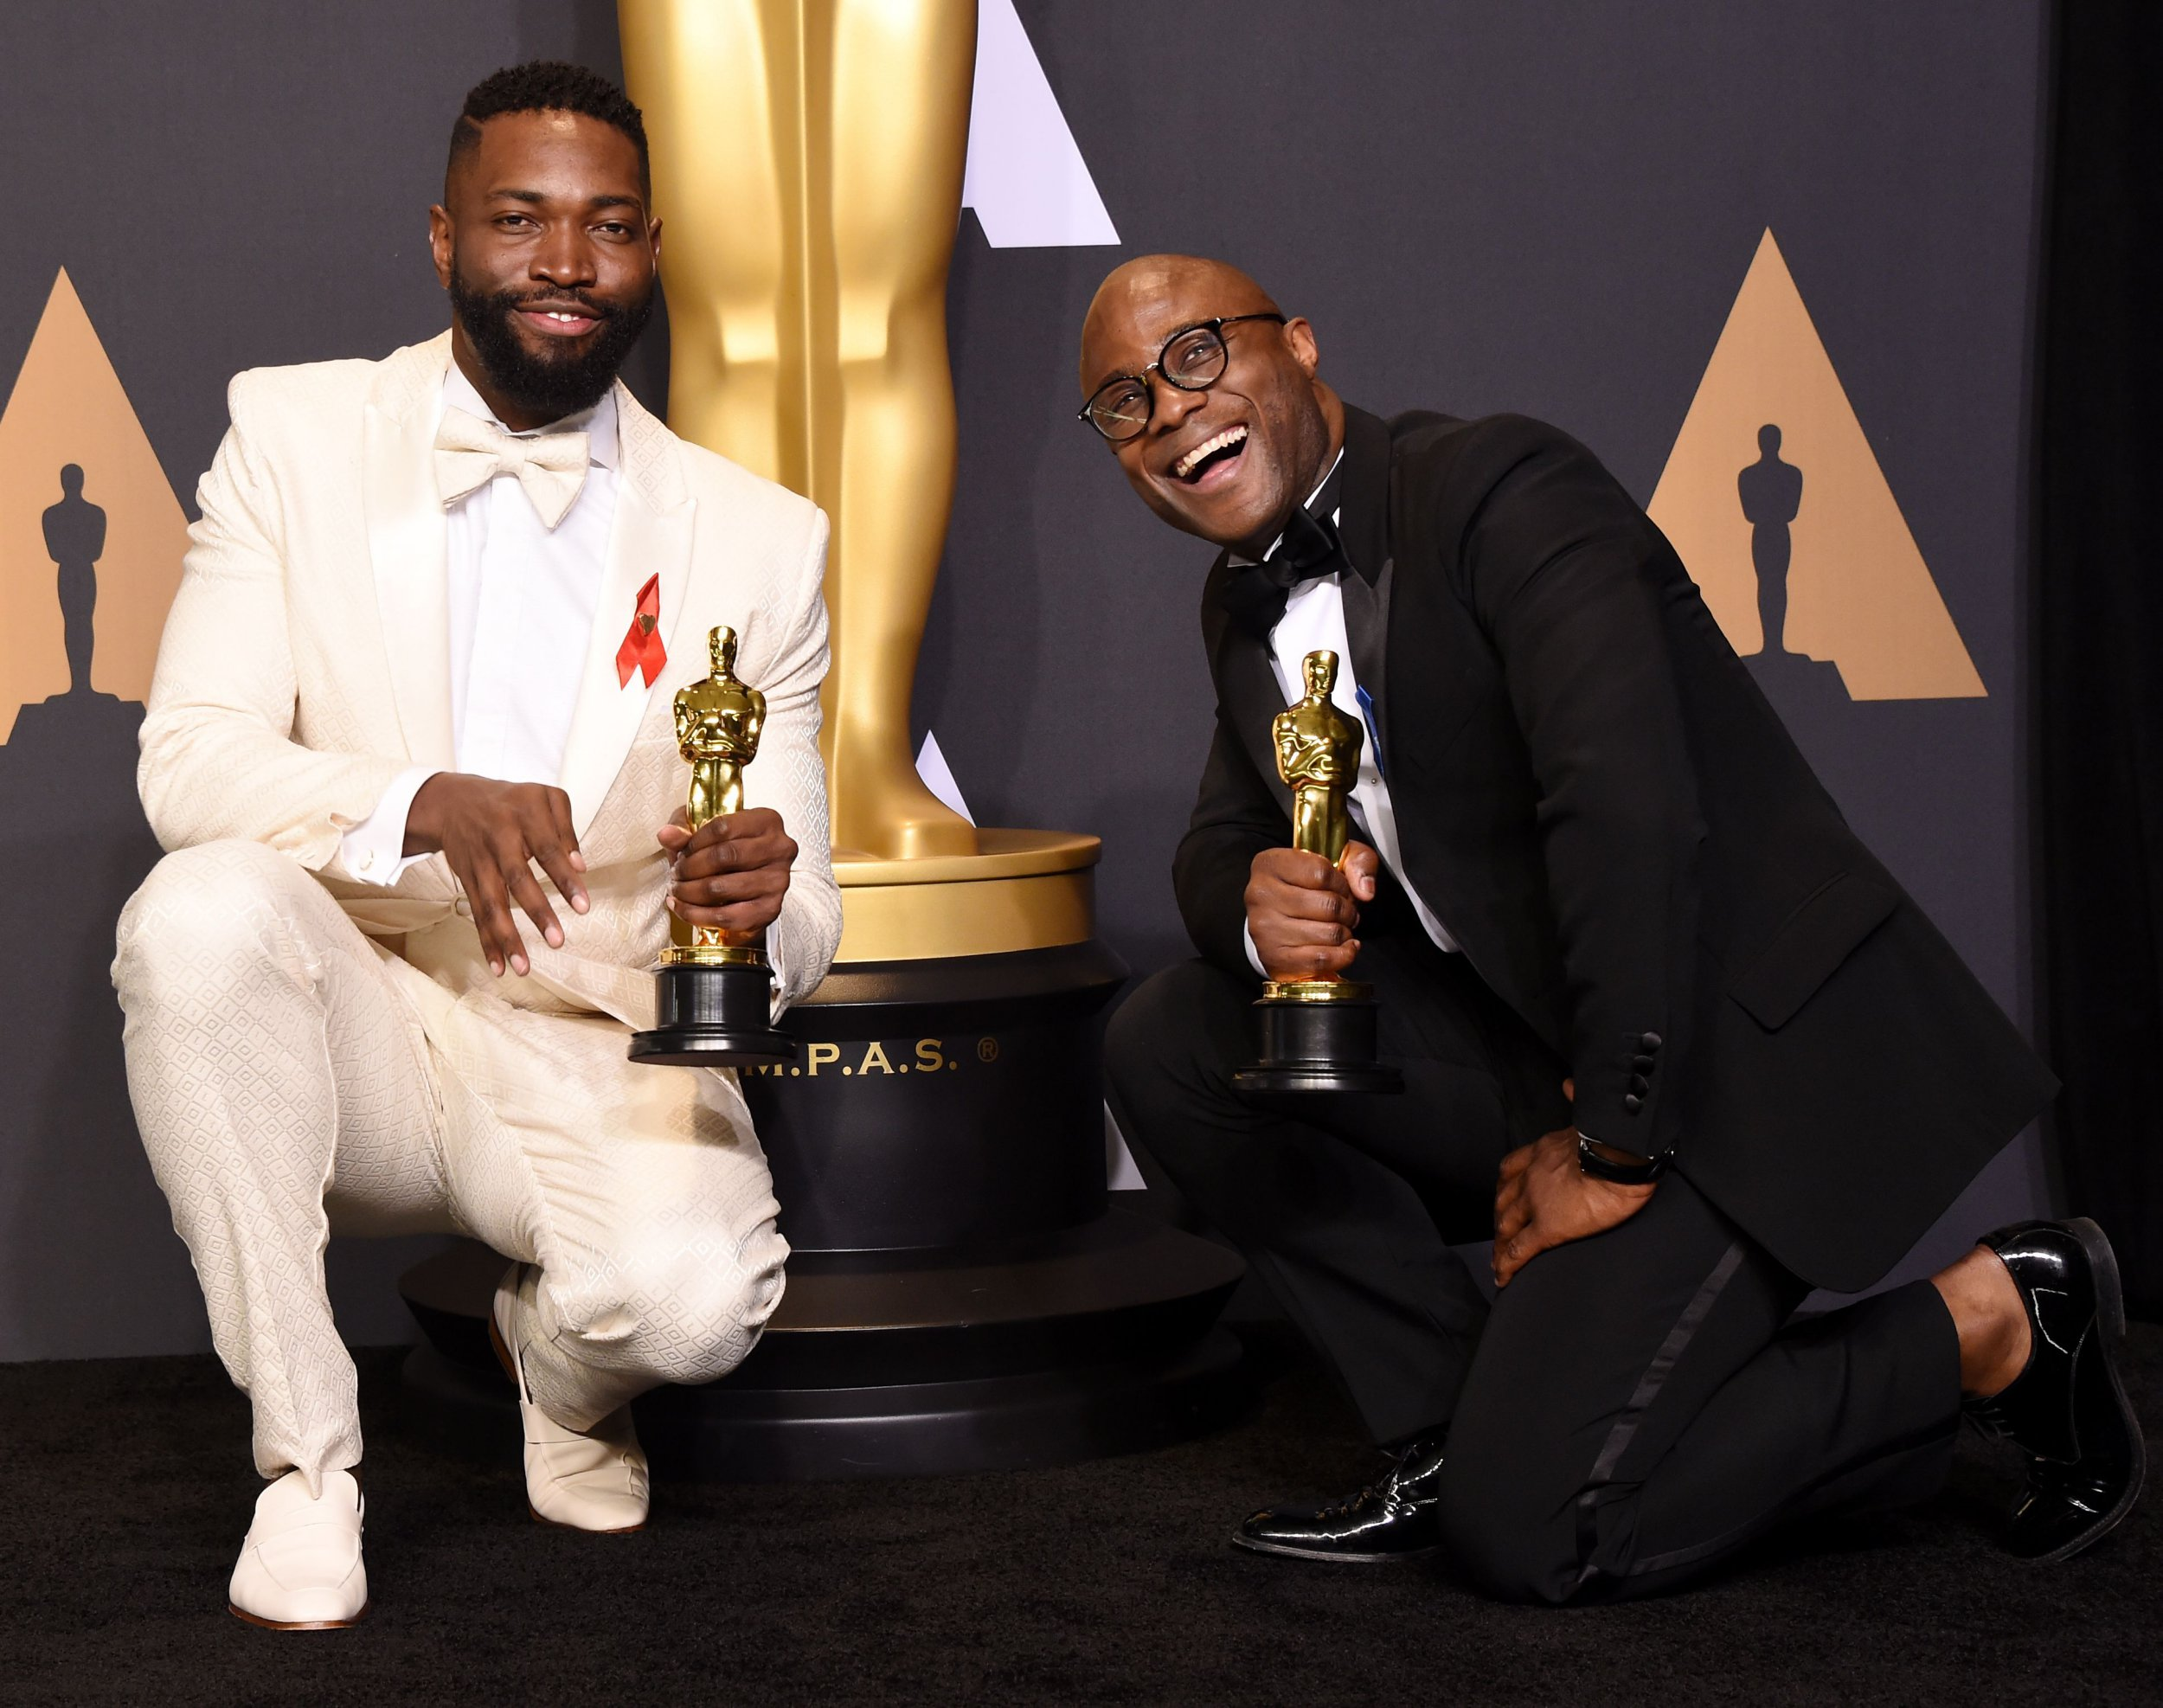 Moonlight cast and crew turn down a chance for do-over at accepting best picture Oscar